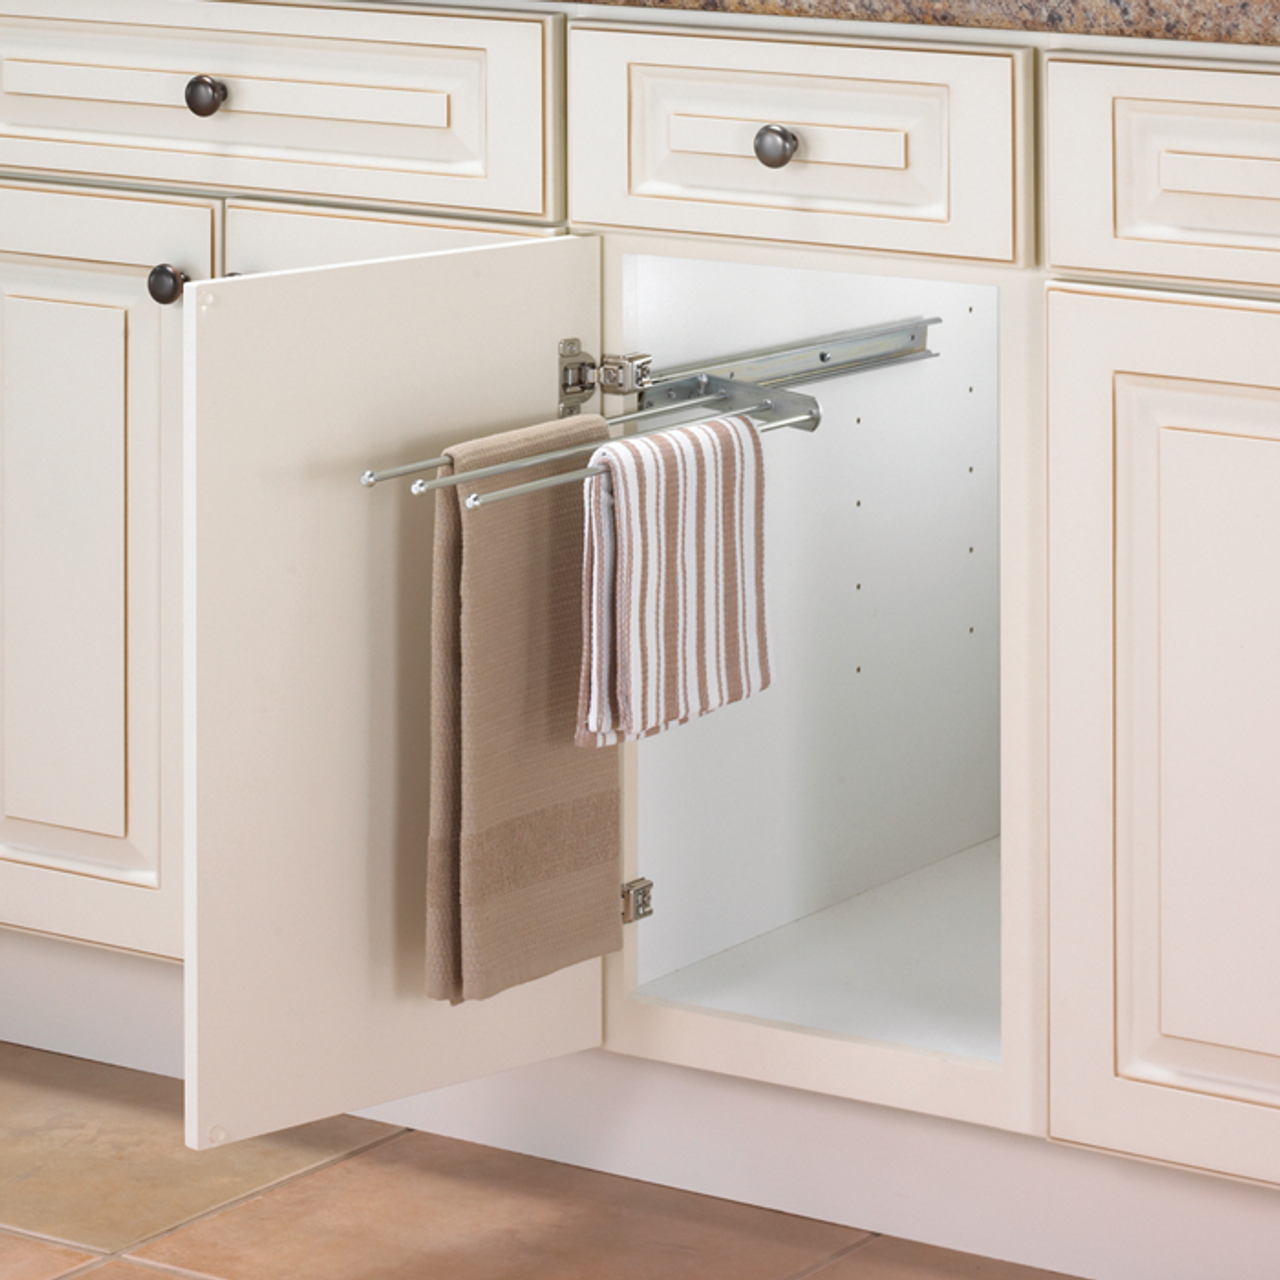 Slide Out Cabinet Towel Bar Solutions Your Organized